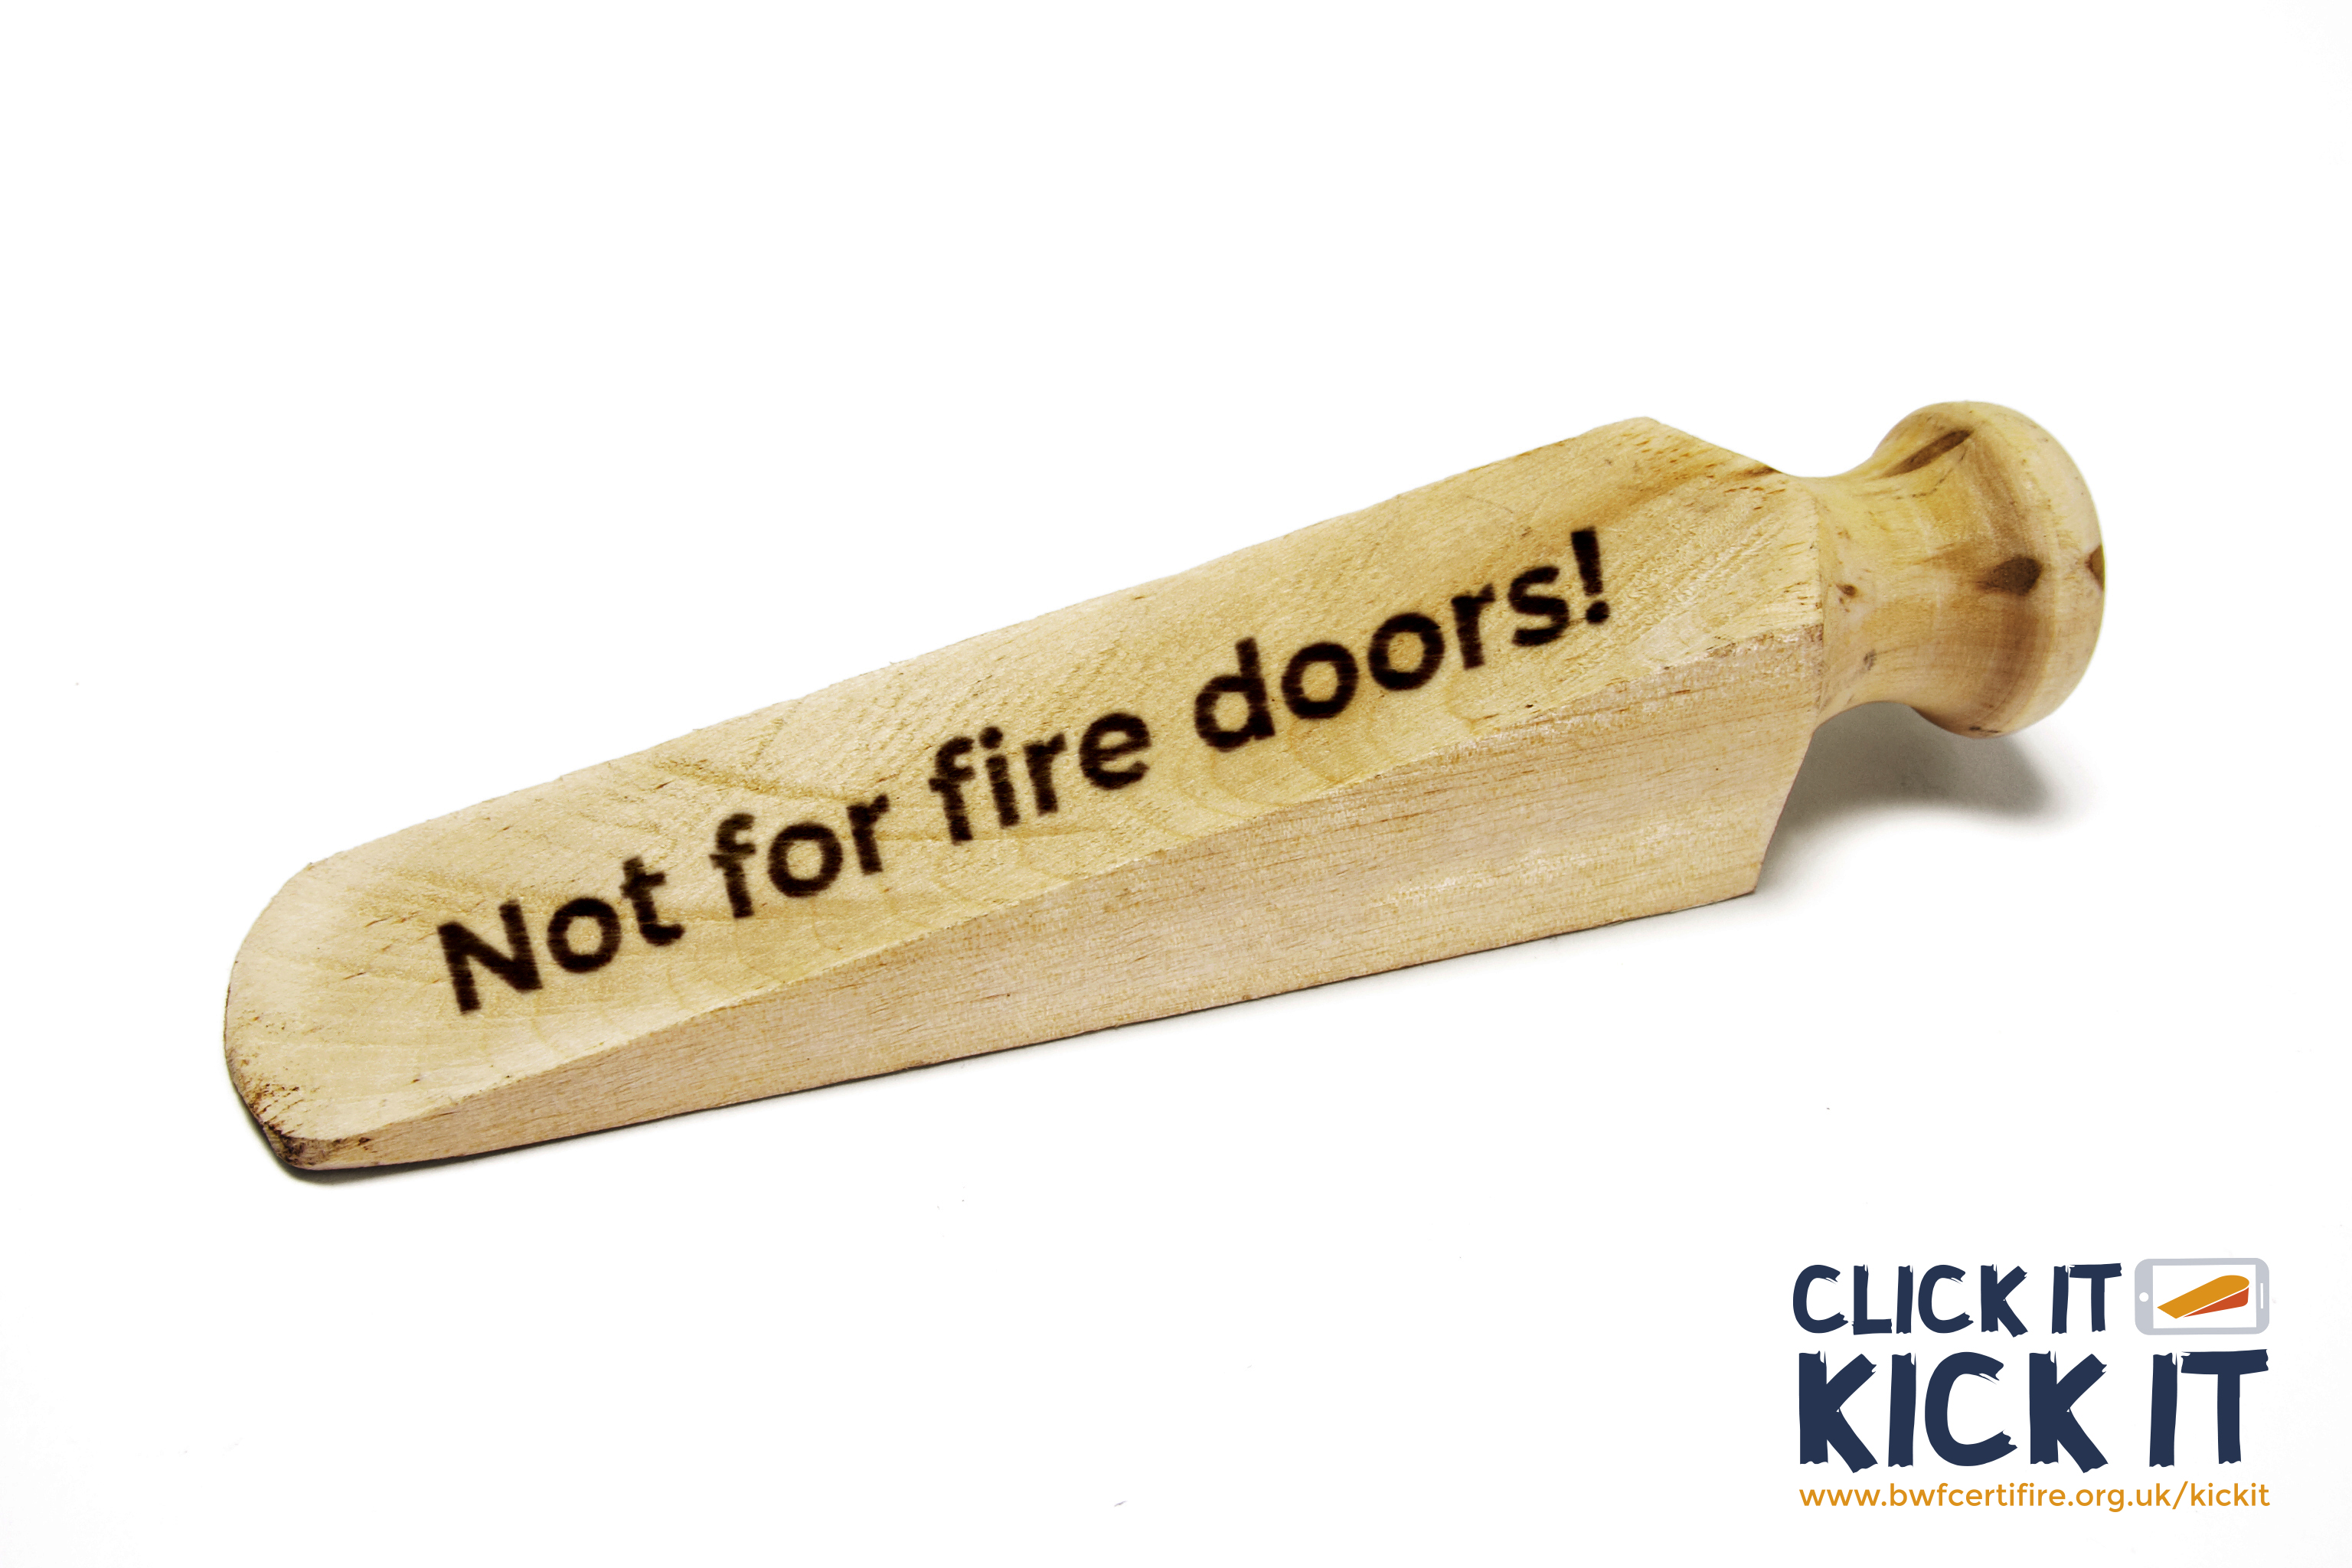 Close the fire door to danger, urges new 'Click It, Kick It' campaign